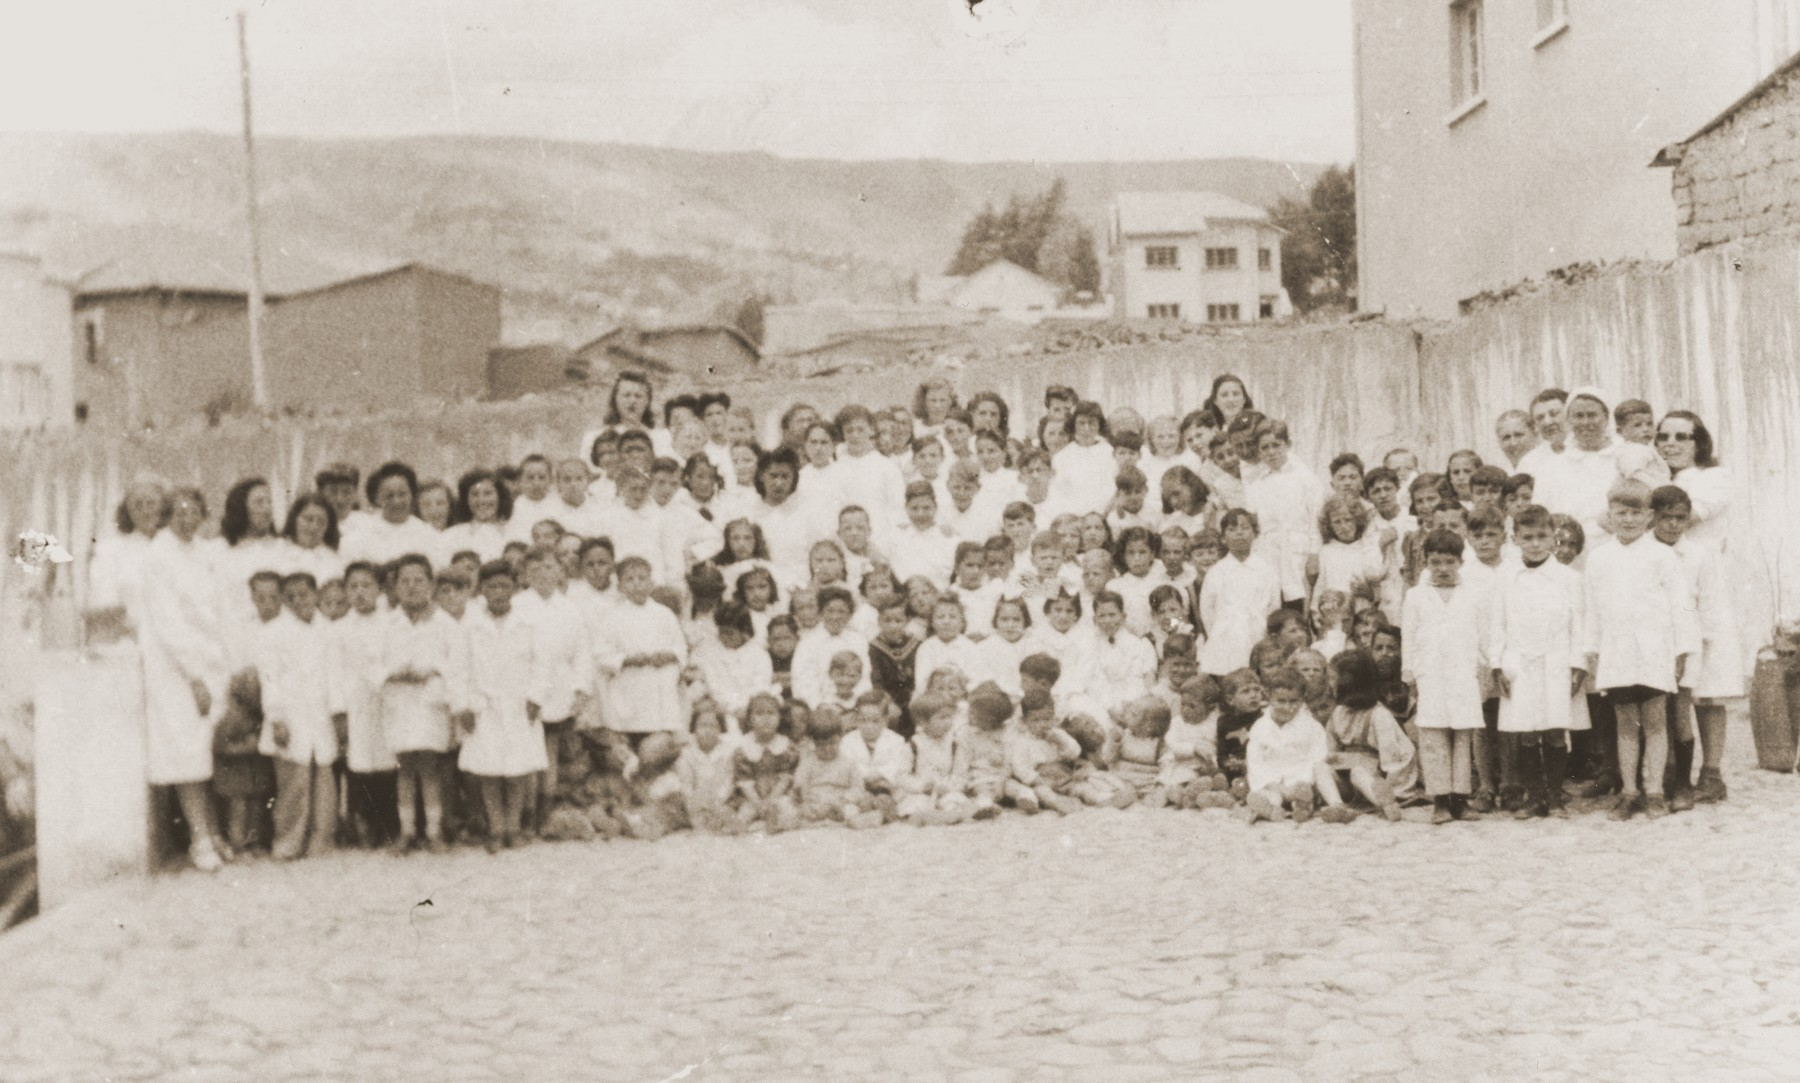 Kindergarten class of the Jewish Kinderheim in La Paz, Bolivia.  The Kinderheim was supported by funds from the JDC and SOPRO (Sociedad de protection immigrantes).